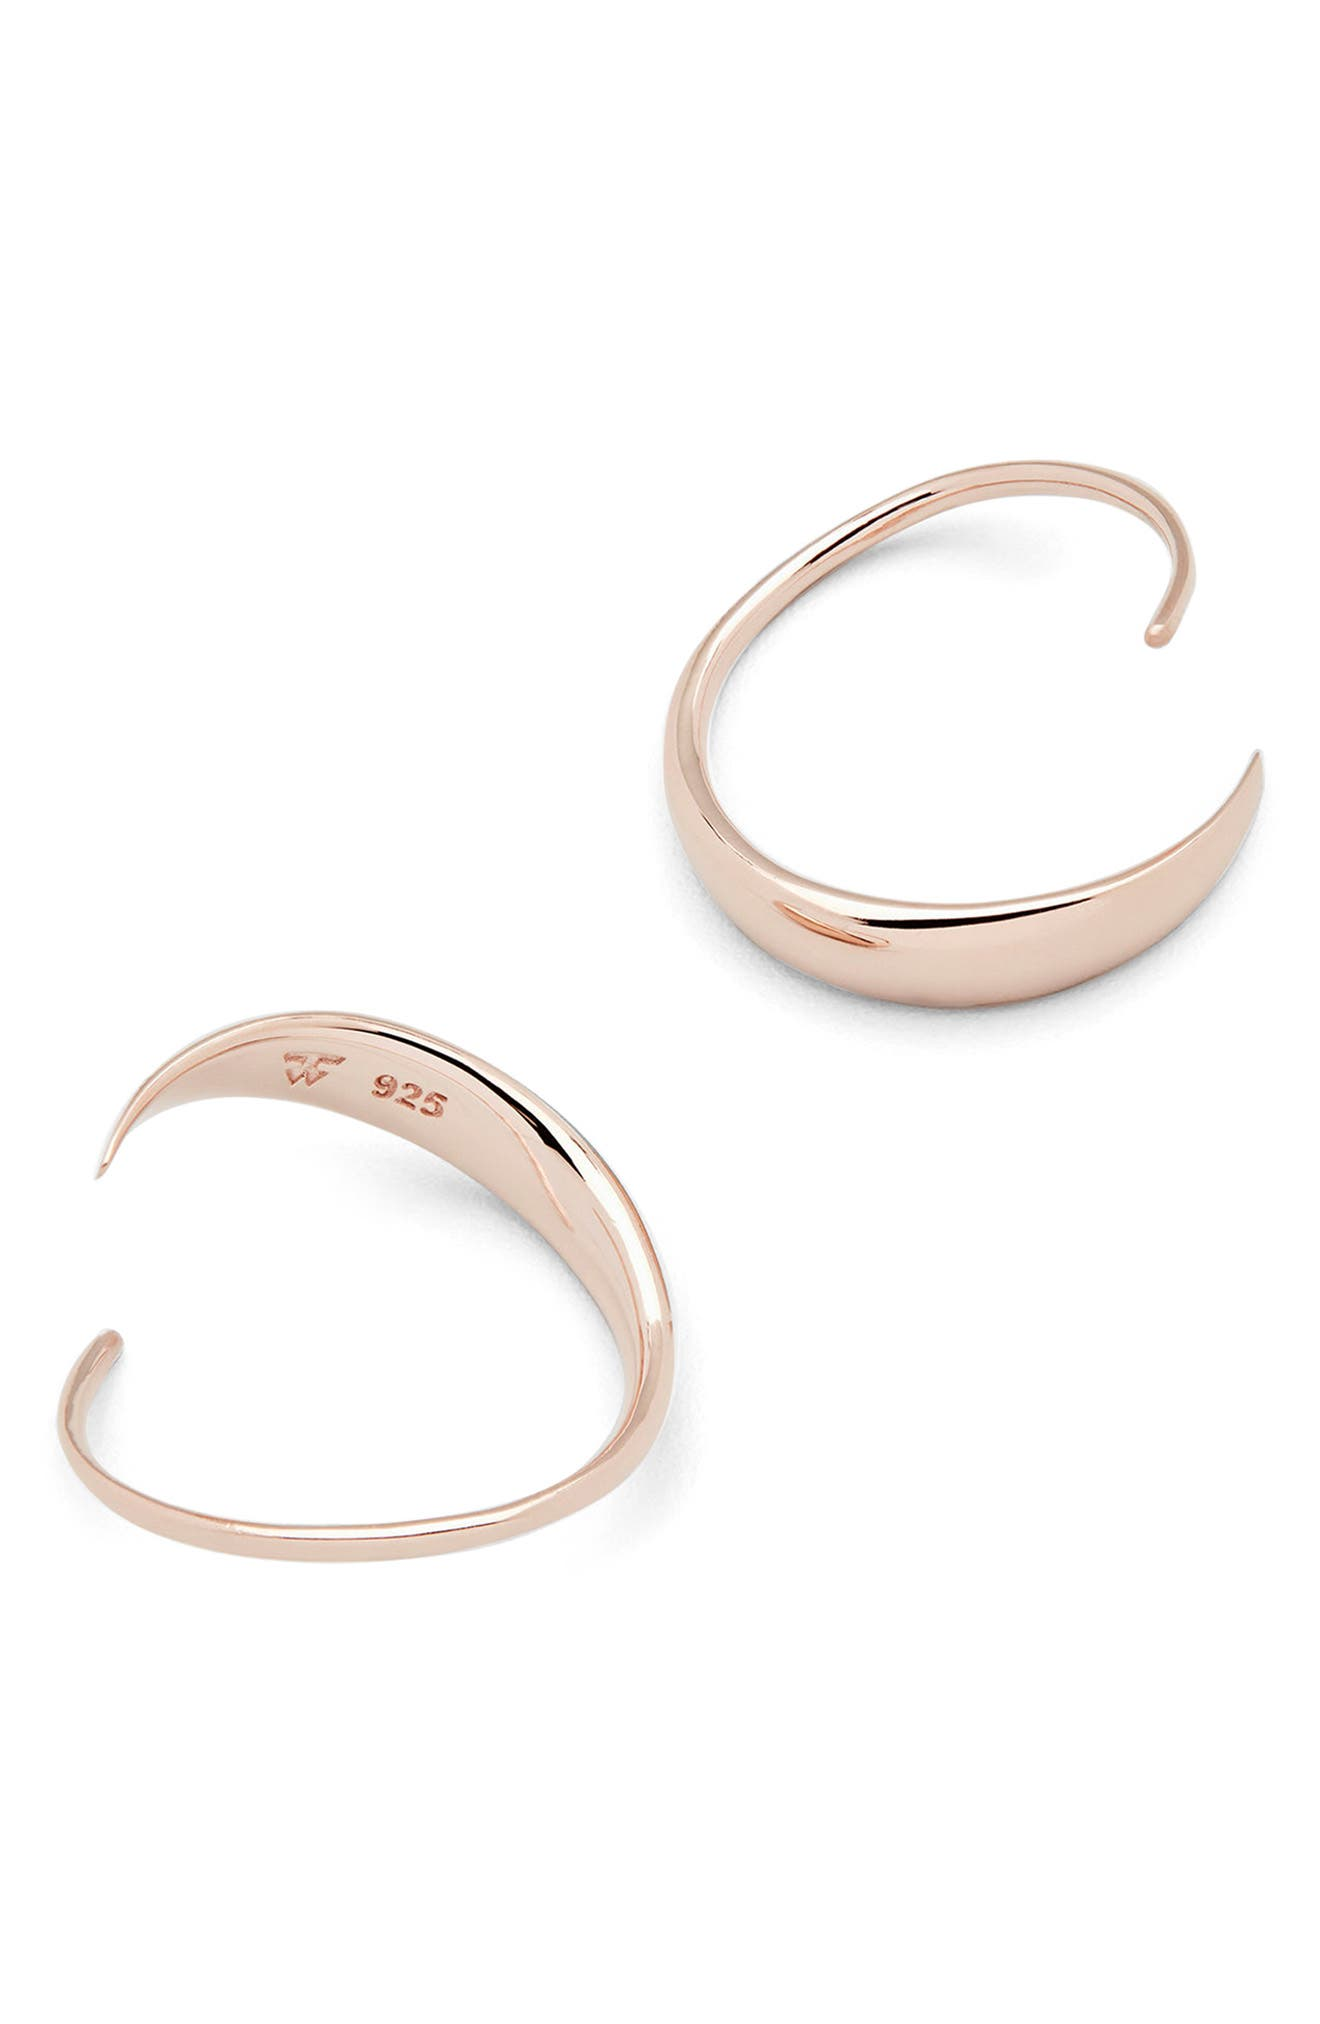 TOM WOOD MINI EAR LOOP EARRINGS